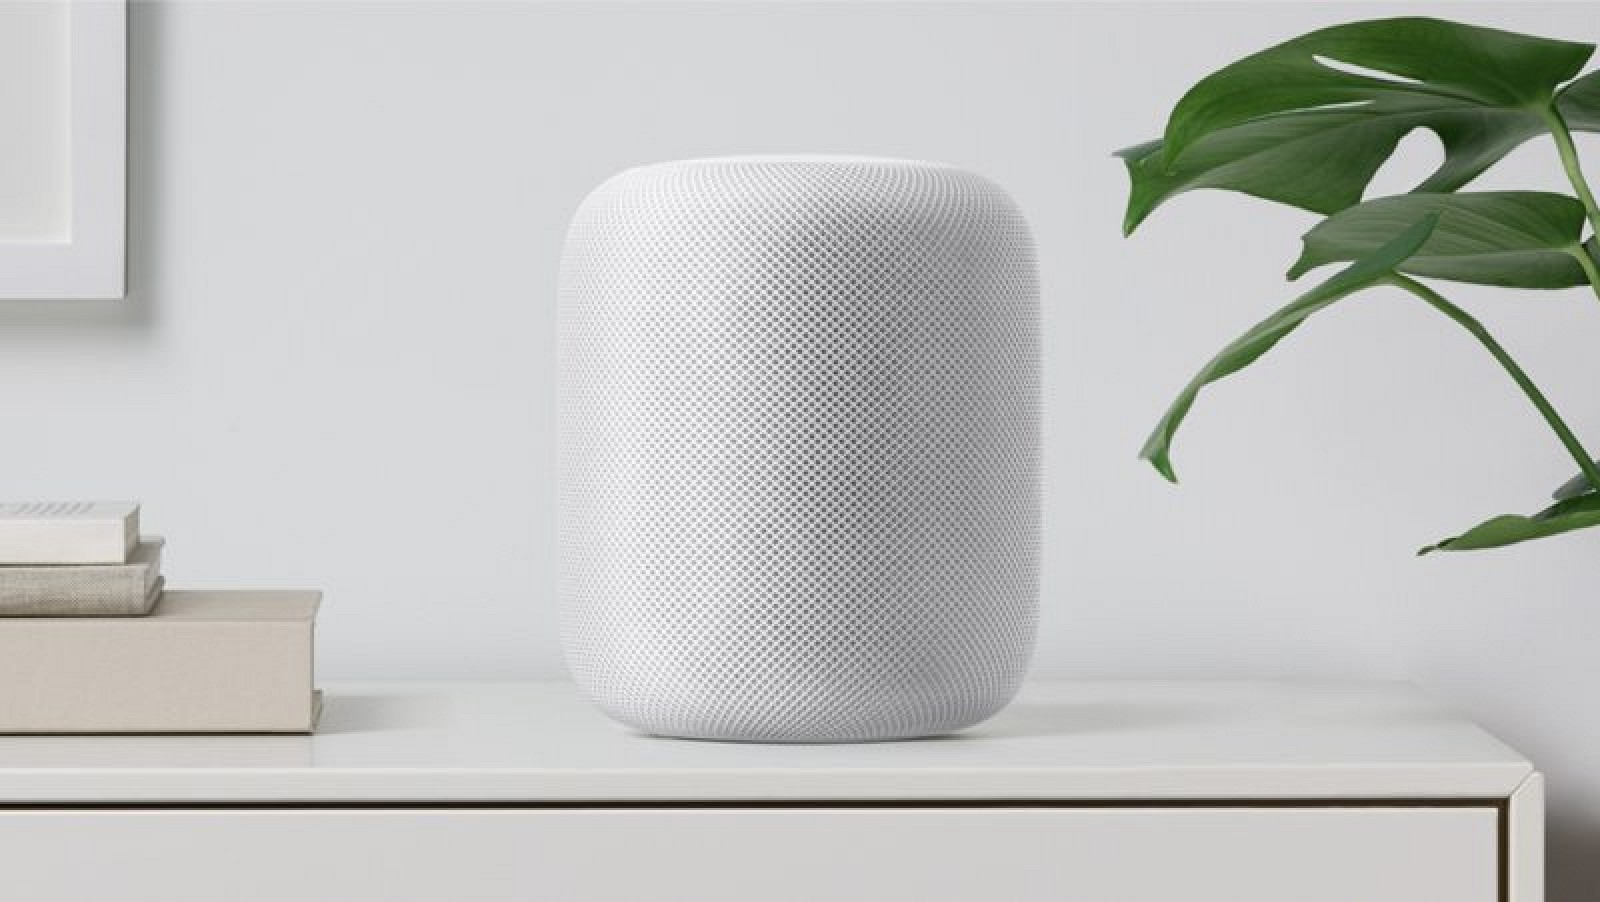 Apple Releases New 13.4.5 Software for HomePod - MacRumors